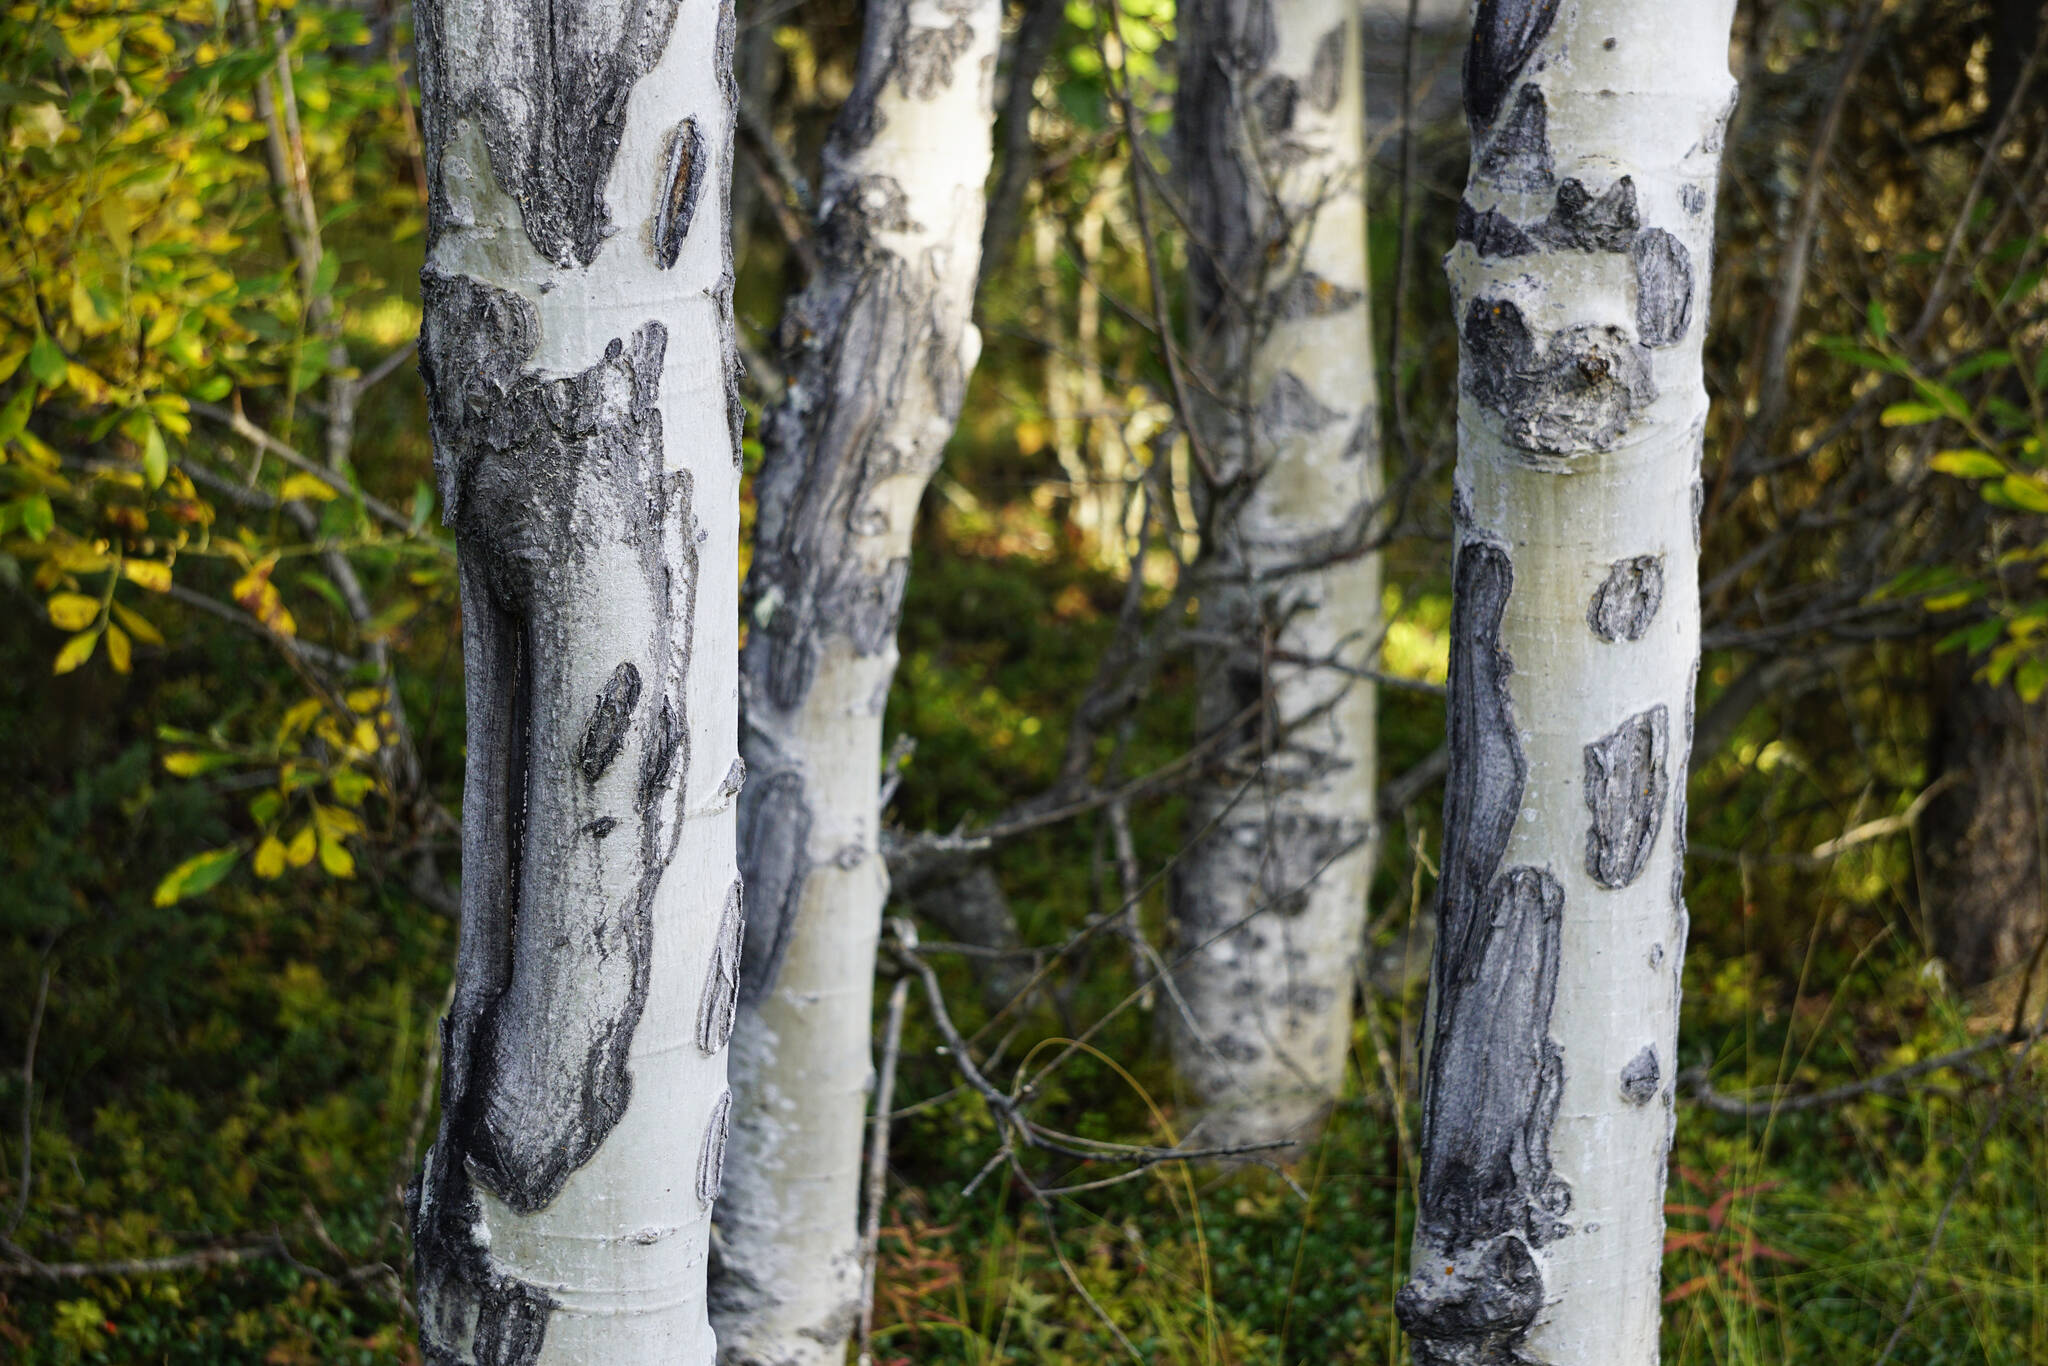 Scars on birch trees create abstract shapes on Saturday, Sept. 11, 2021, at the Hidden Lake Campground in the Kenai National Wildlife Refuge near Sterling, Alaska. (Photo by Michael Armstrong/Homer News)